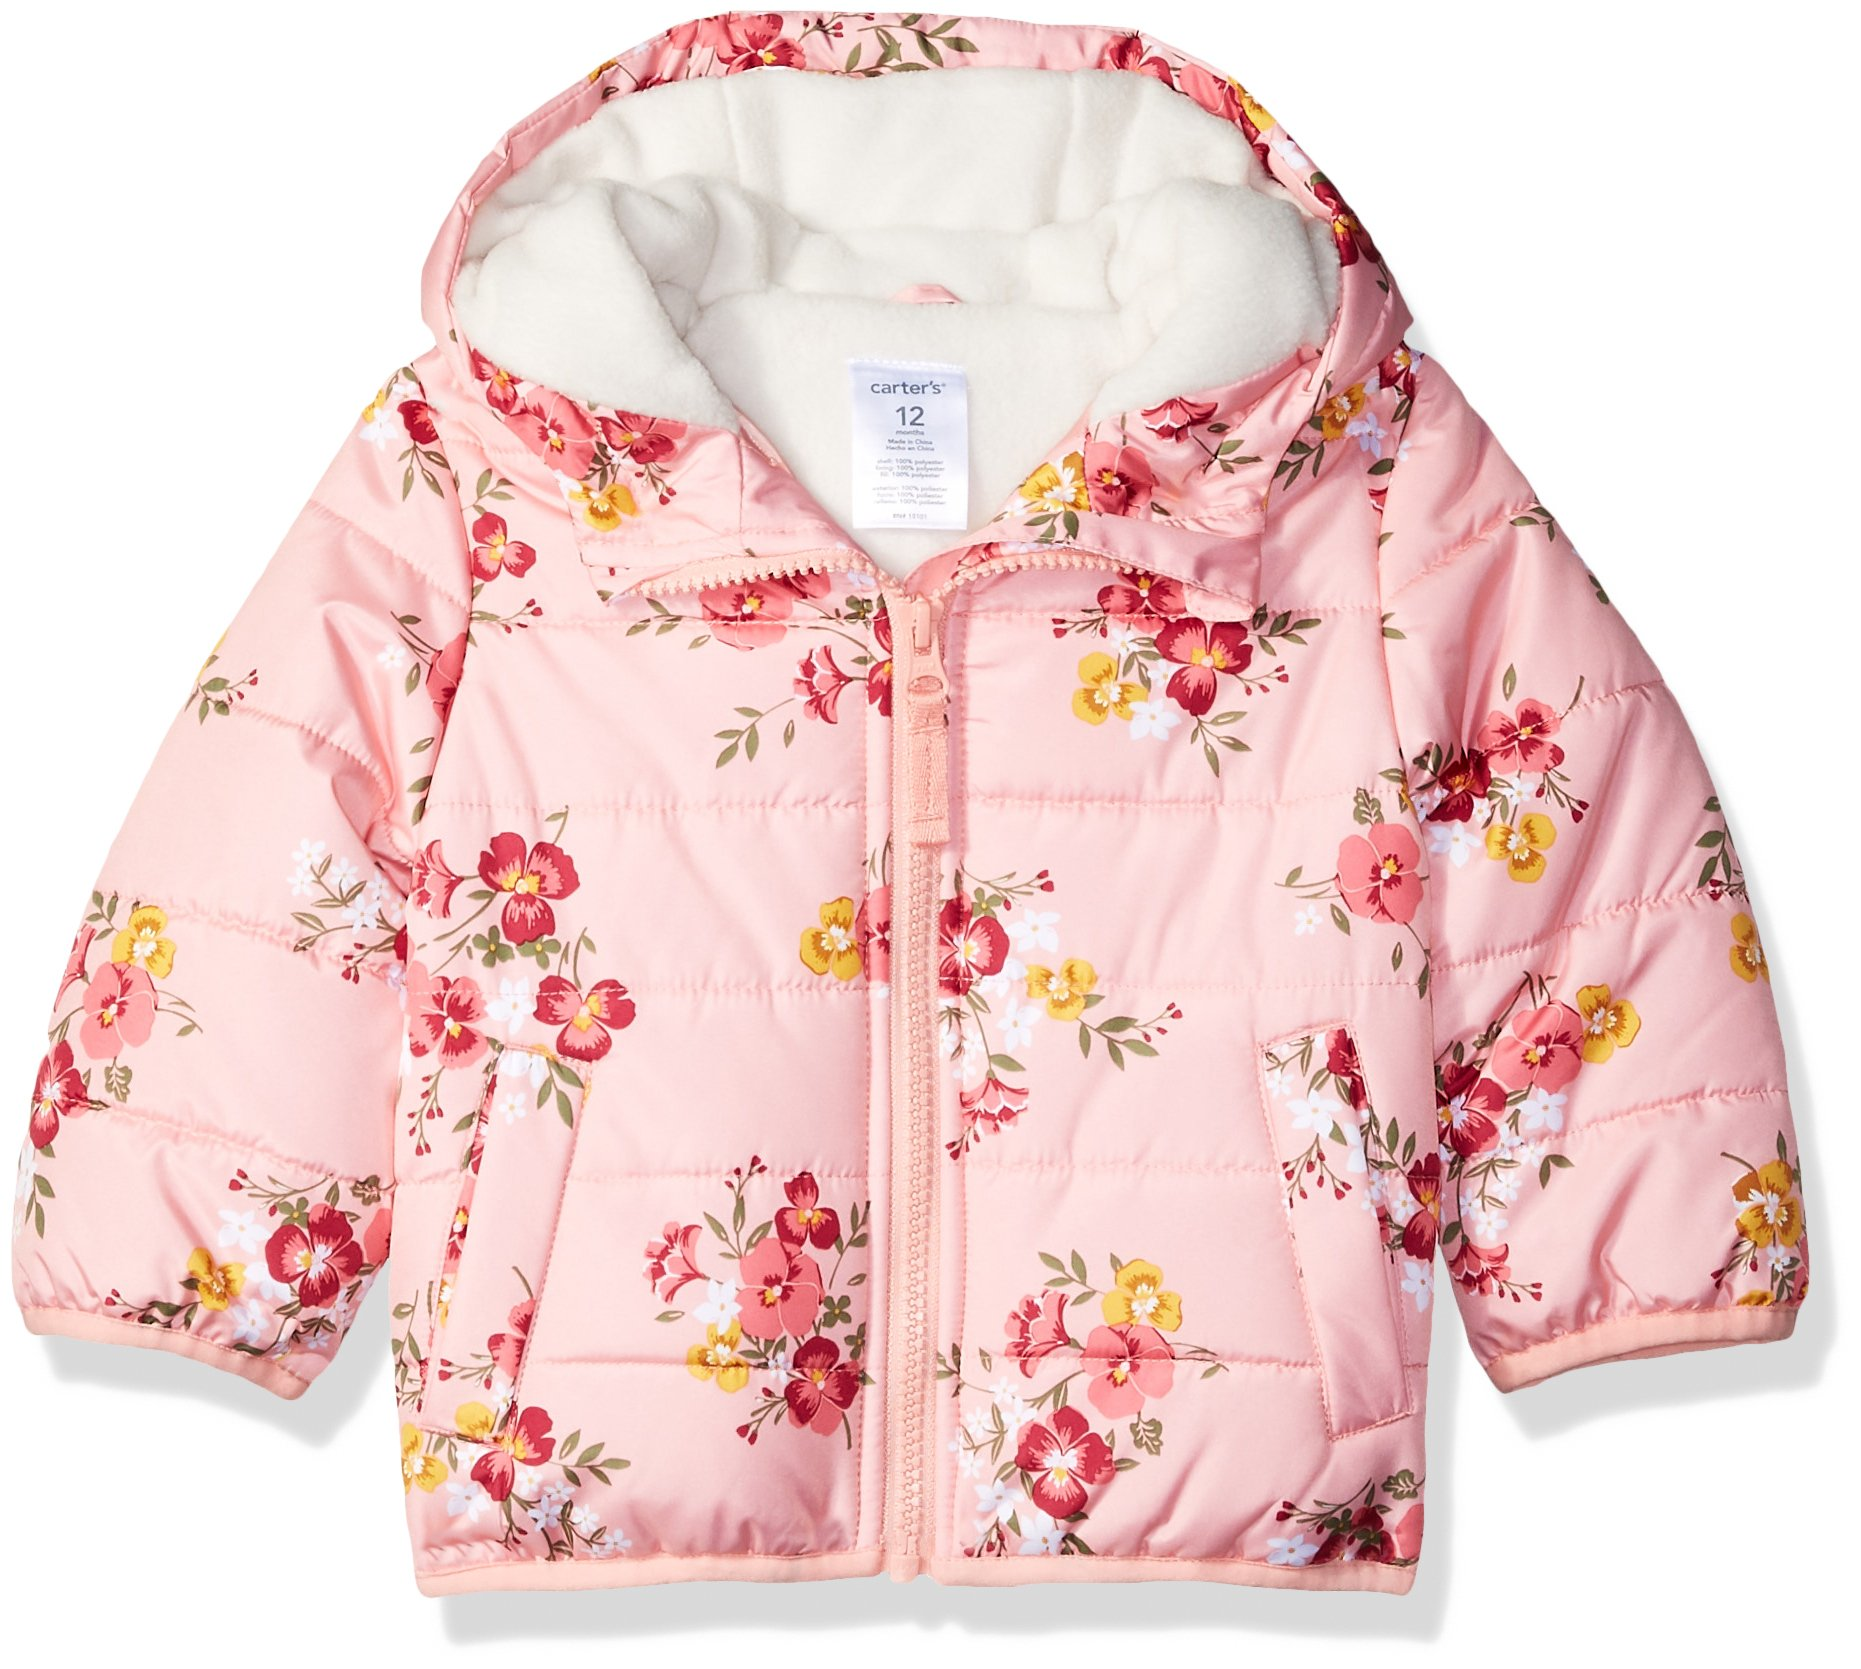 Carter's Baby Girls Fleece Lined Puffer Jacket Coat, Floral, 18M